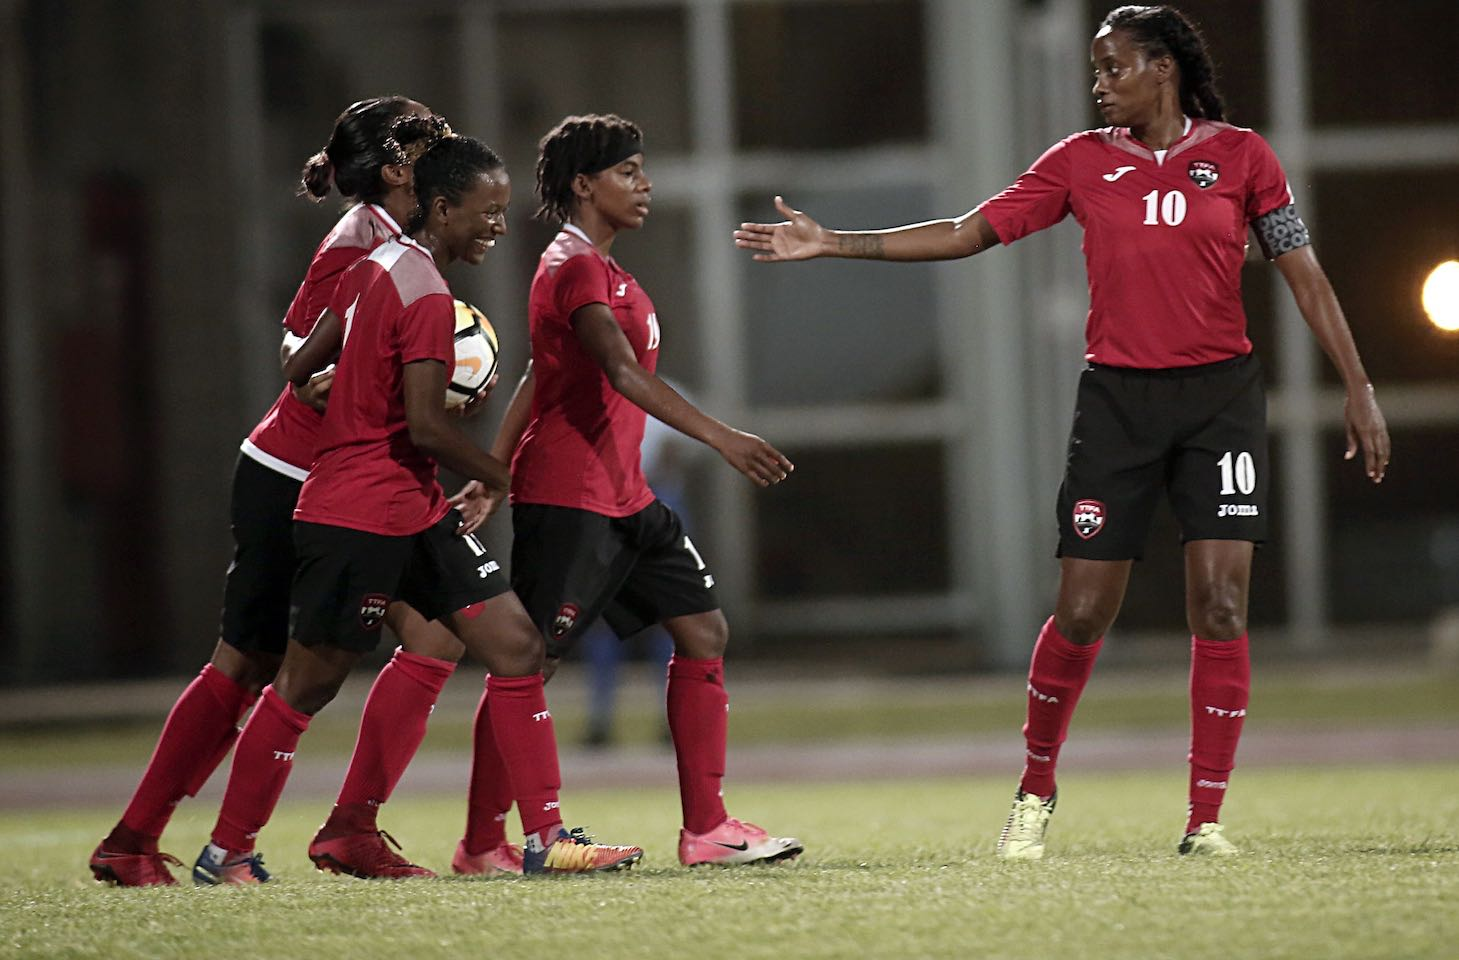 T&T secures top spot in Group C with 13-0 win over Grenada.